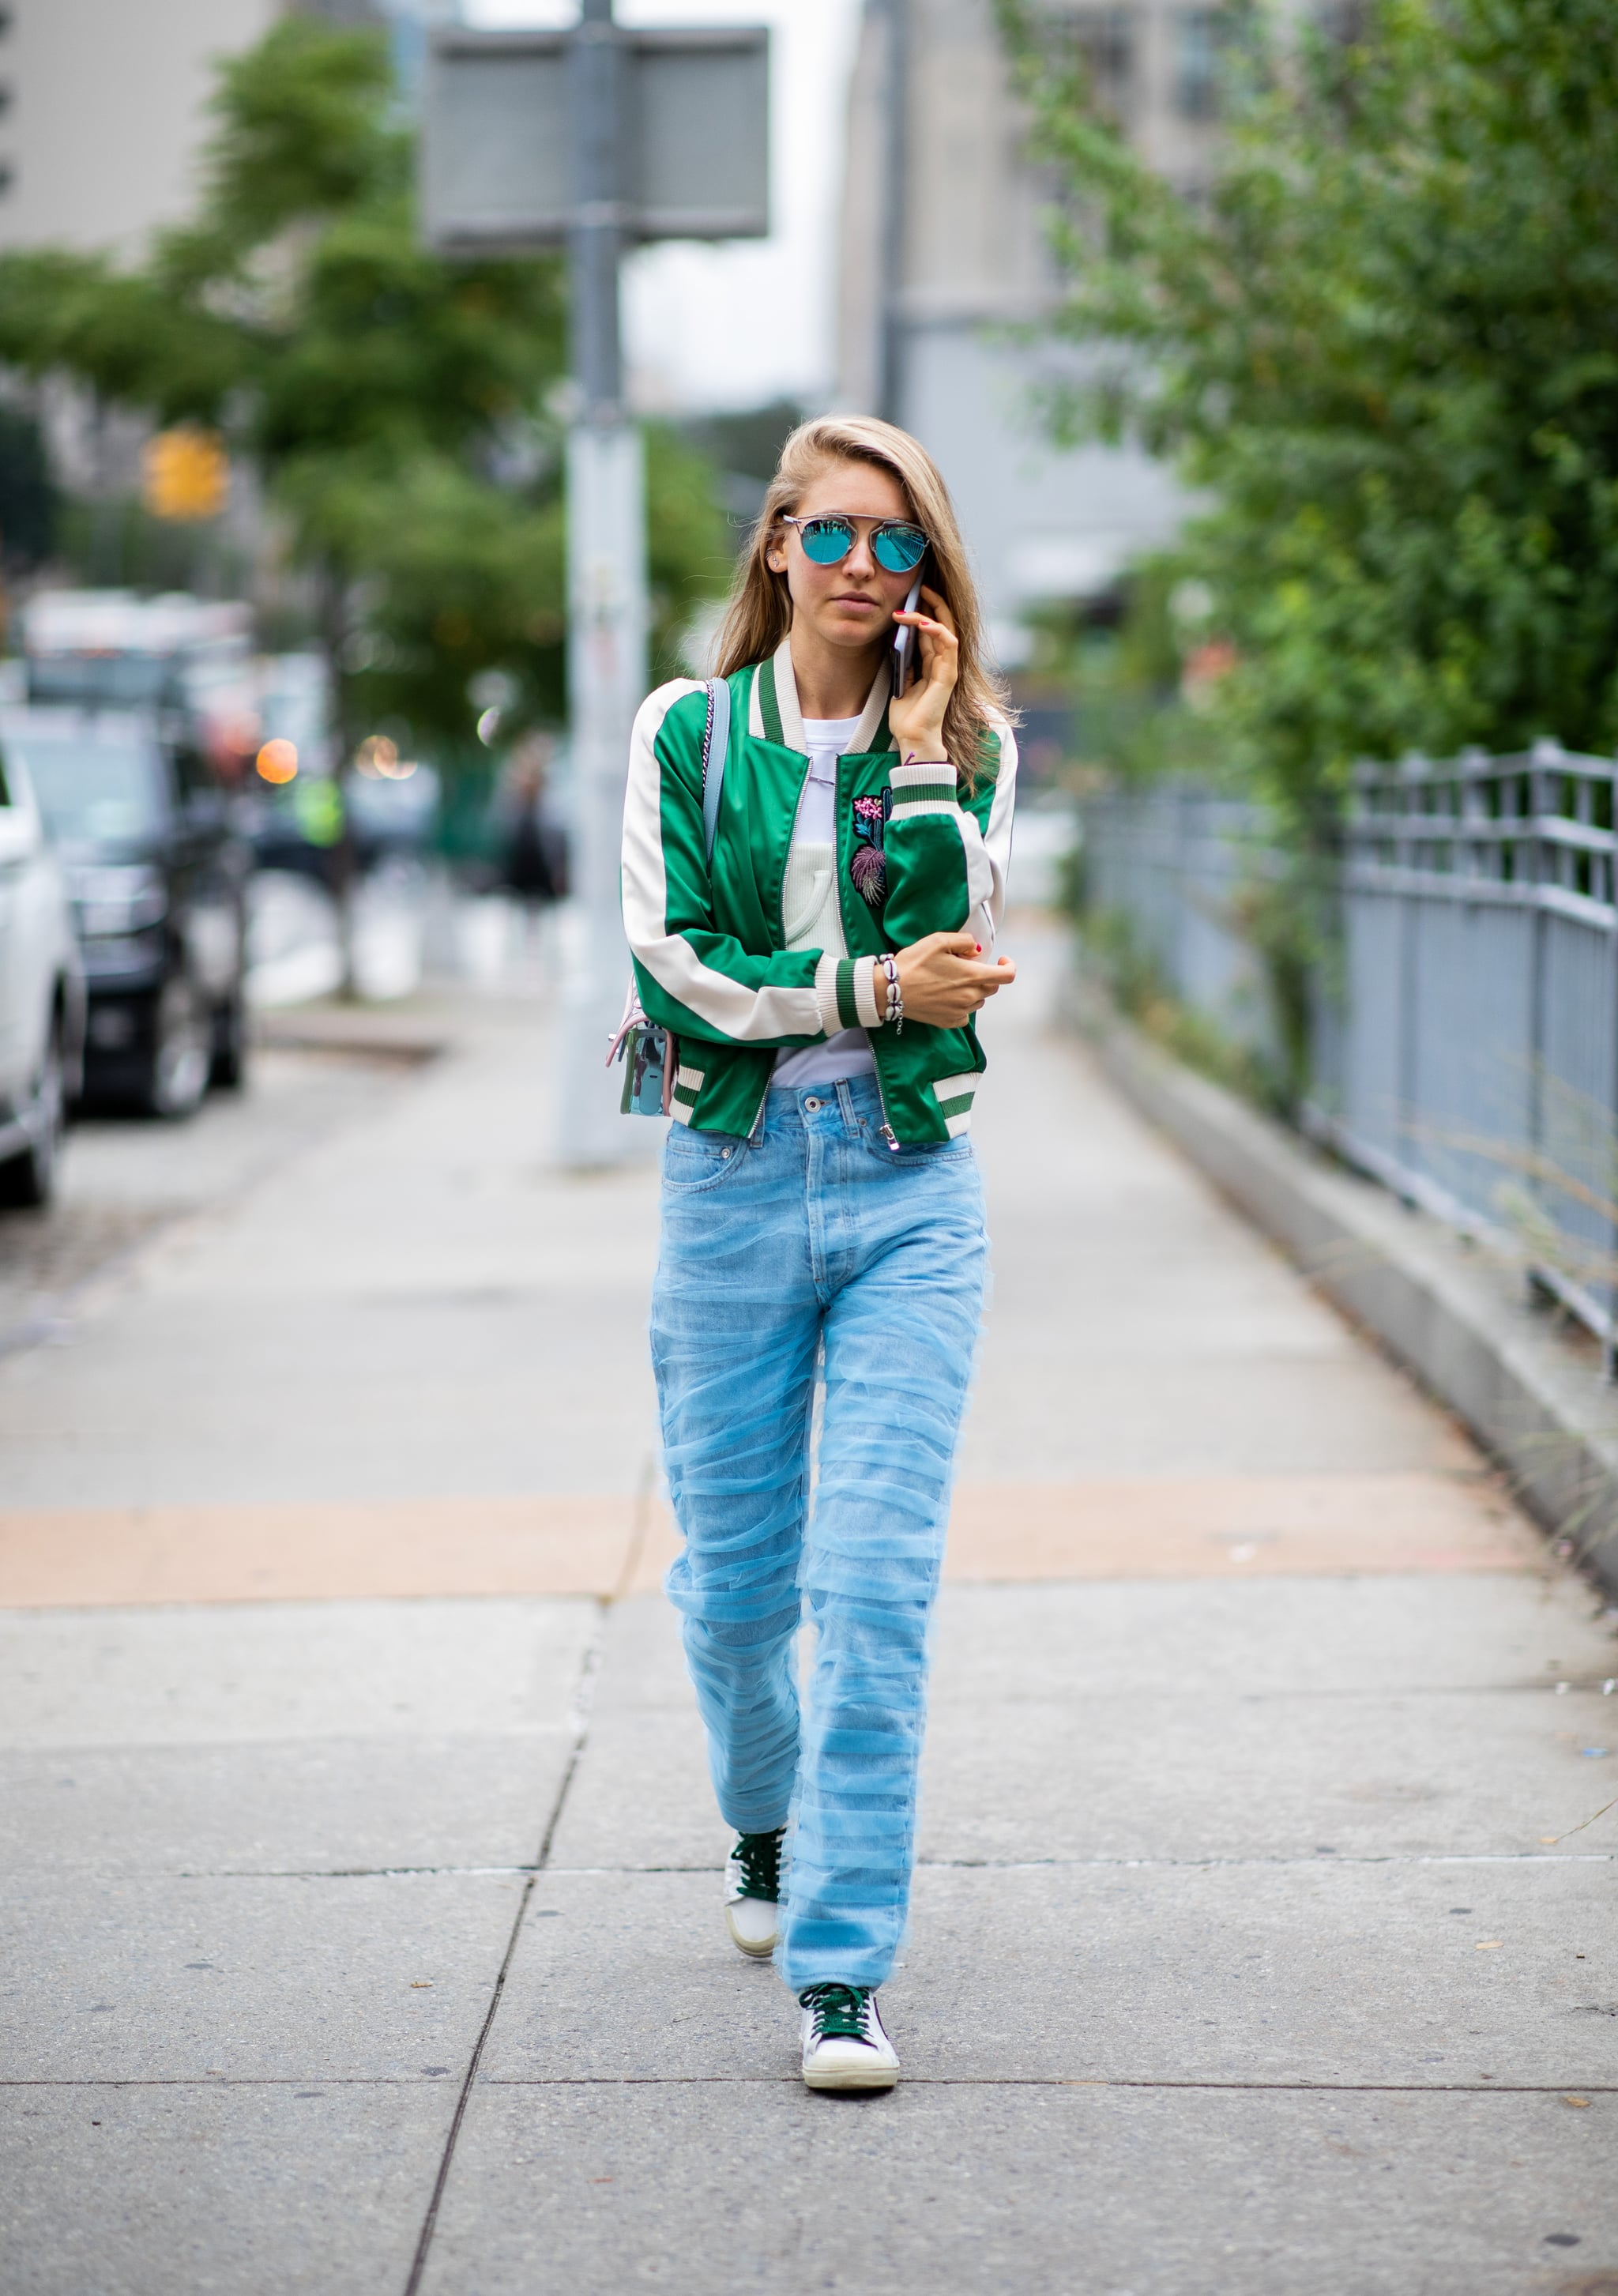 Report Denim Trends 2019 Popsugar Fashion Global Dmag